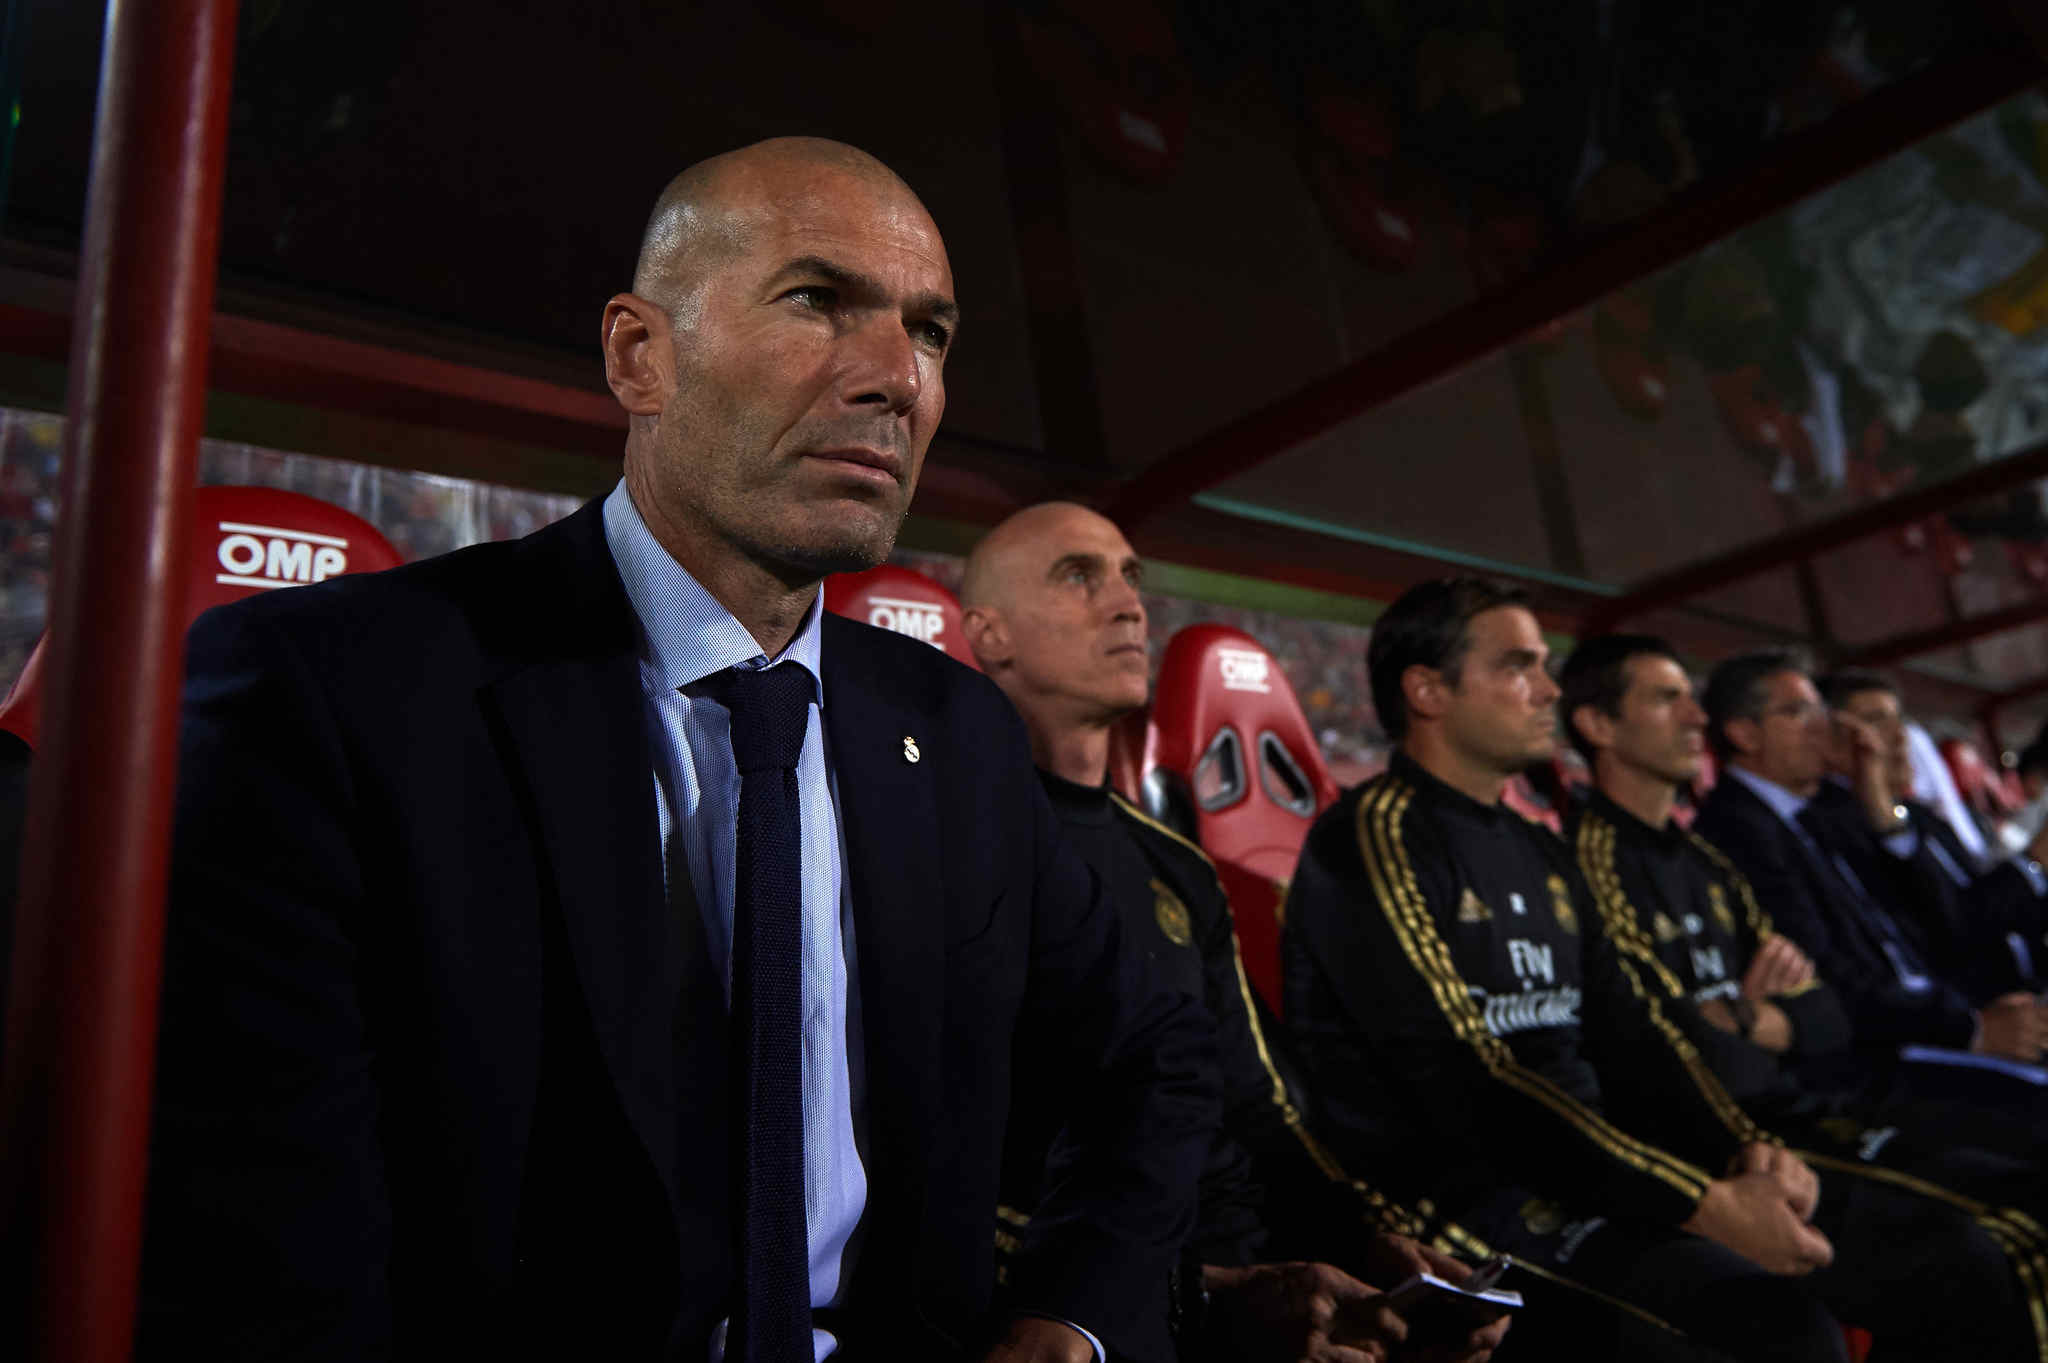 MALLORCA, SPAIN - OCTOBER 19: Head Coach Zinedine <HIT>Zidane</HIT> of Real Madrid CF looks on before the La Liga match between RCD Mallorca and Real Madrid CF at Iberostar Estadi on October 19, 2019 in Mallorca, Spain. (Photo by Alex Caparros/Getty Images)